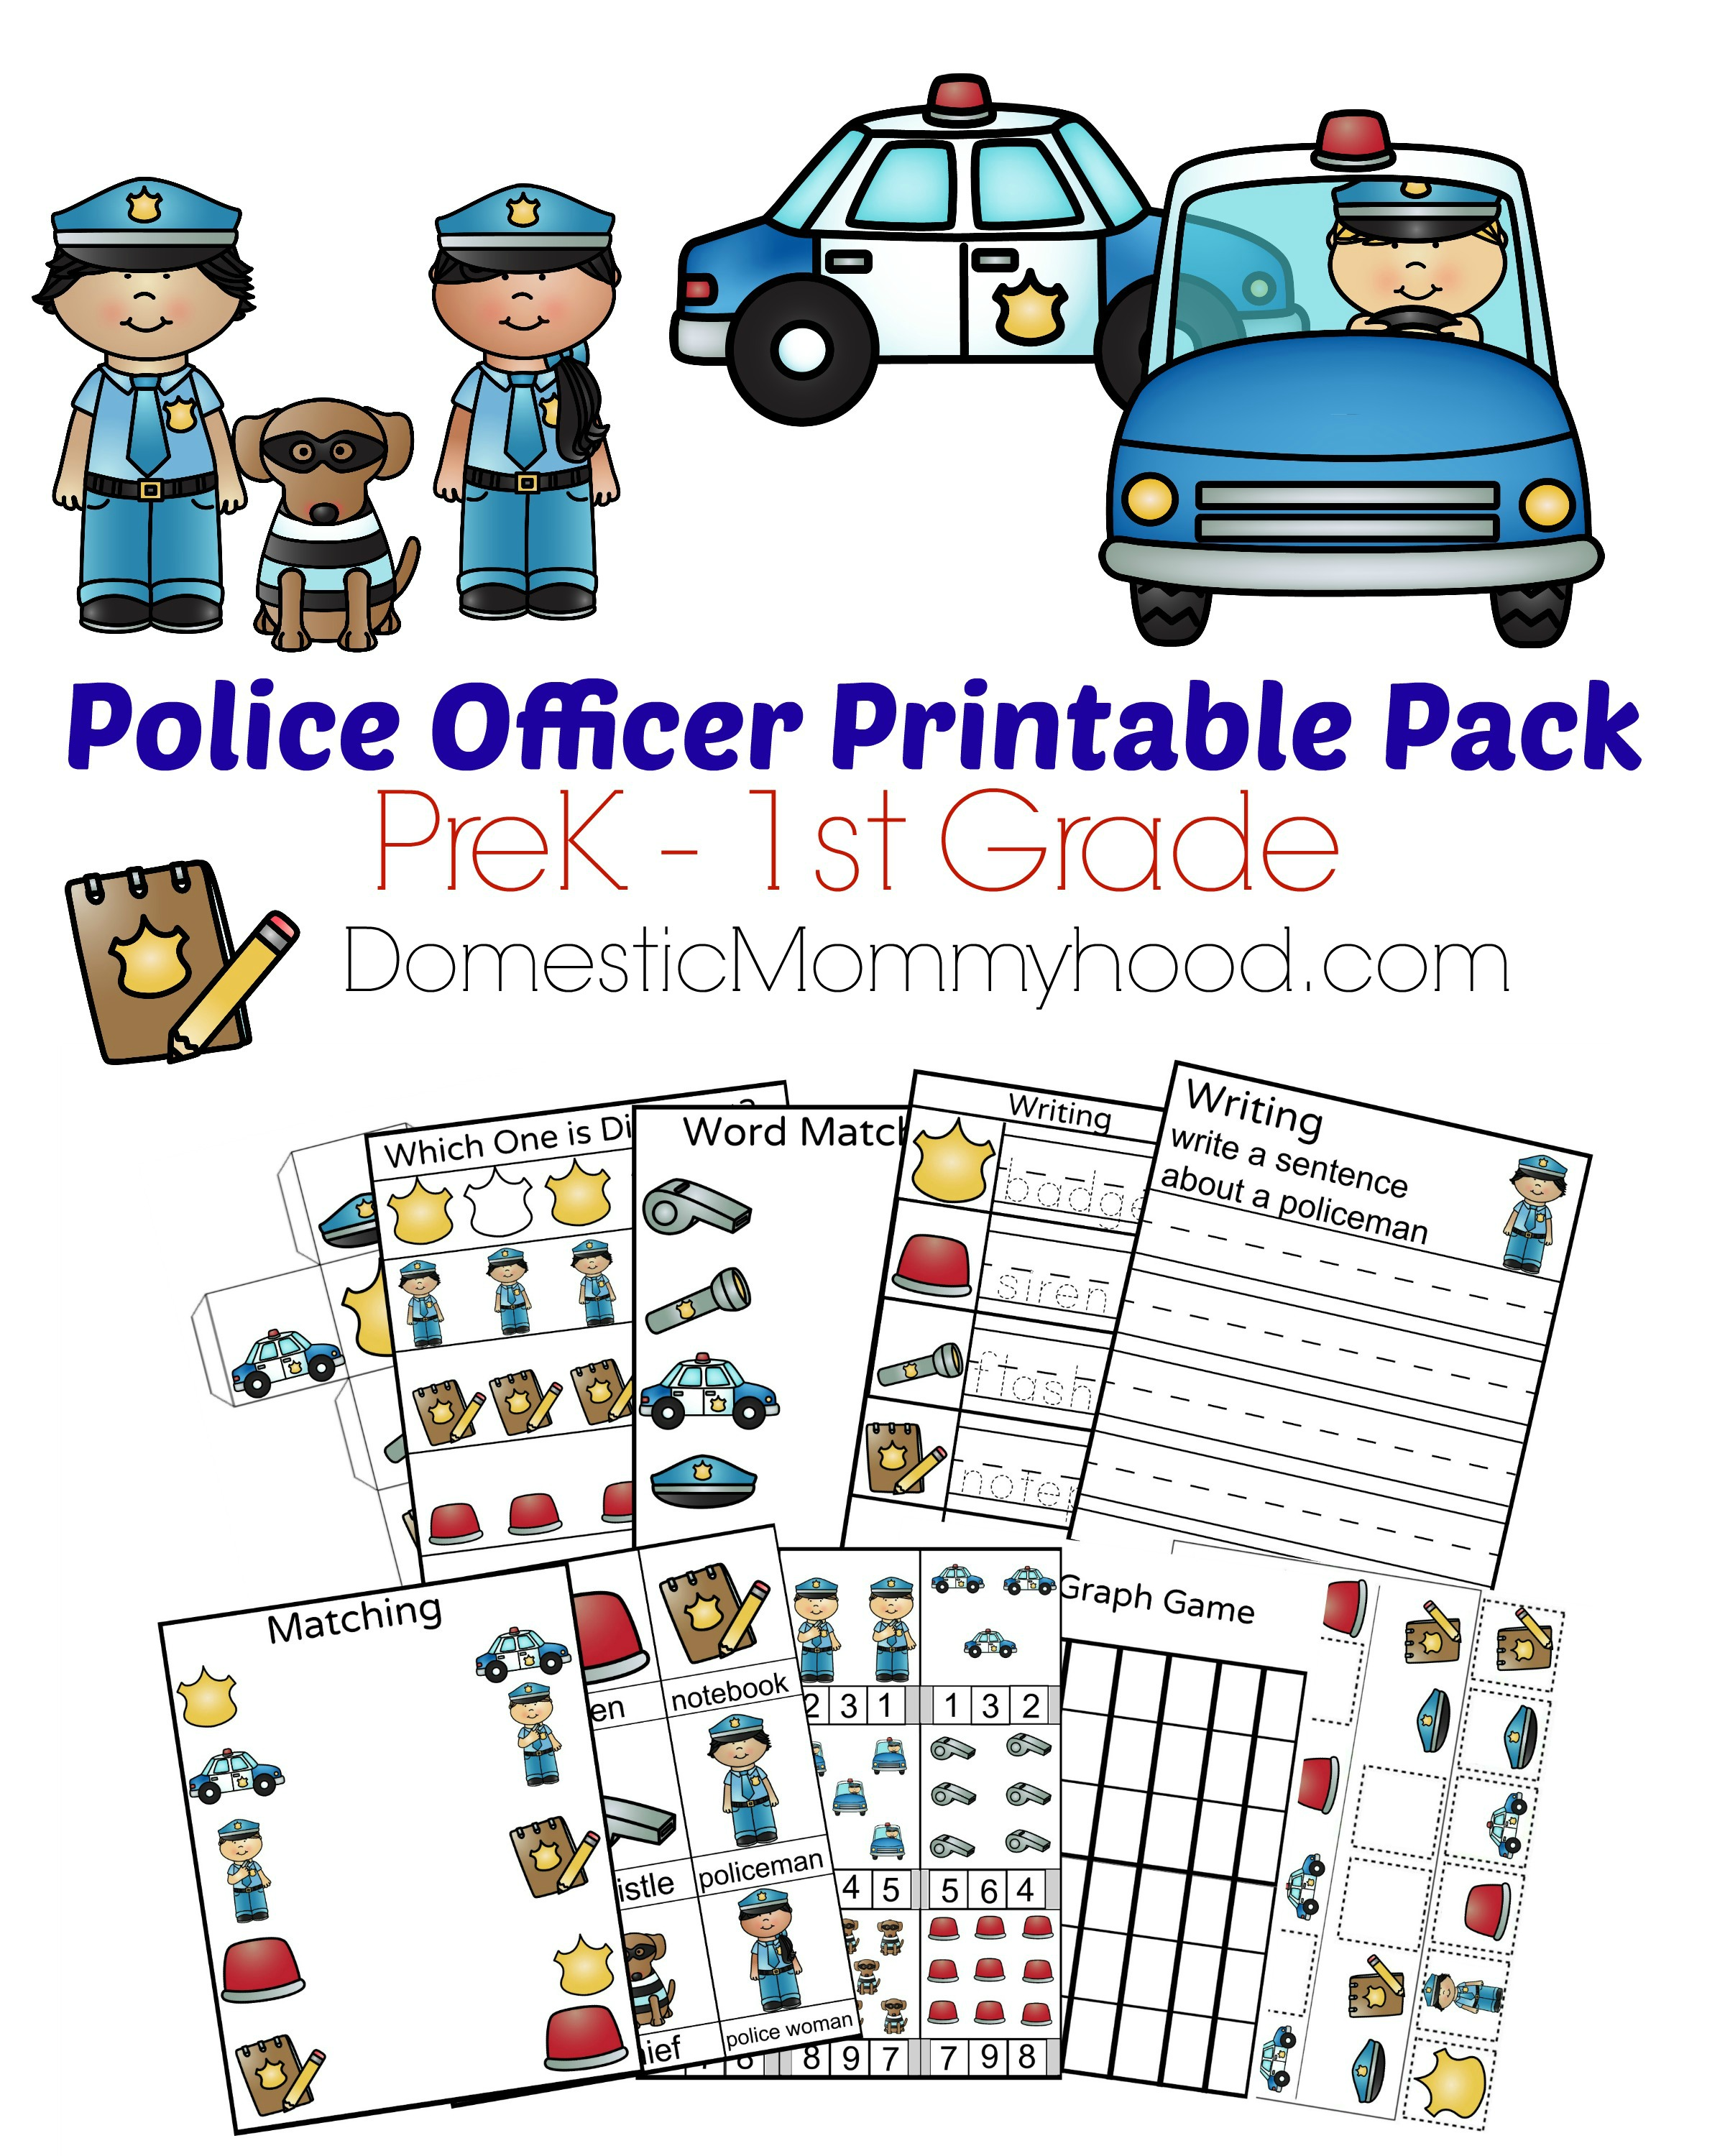 Police Officer Printable Cover DomesticMommyhood.com